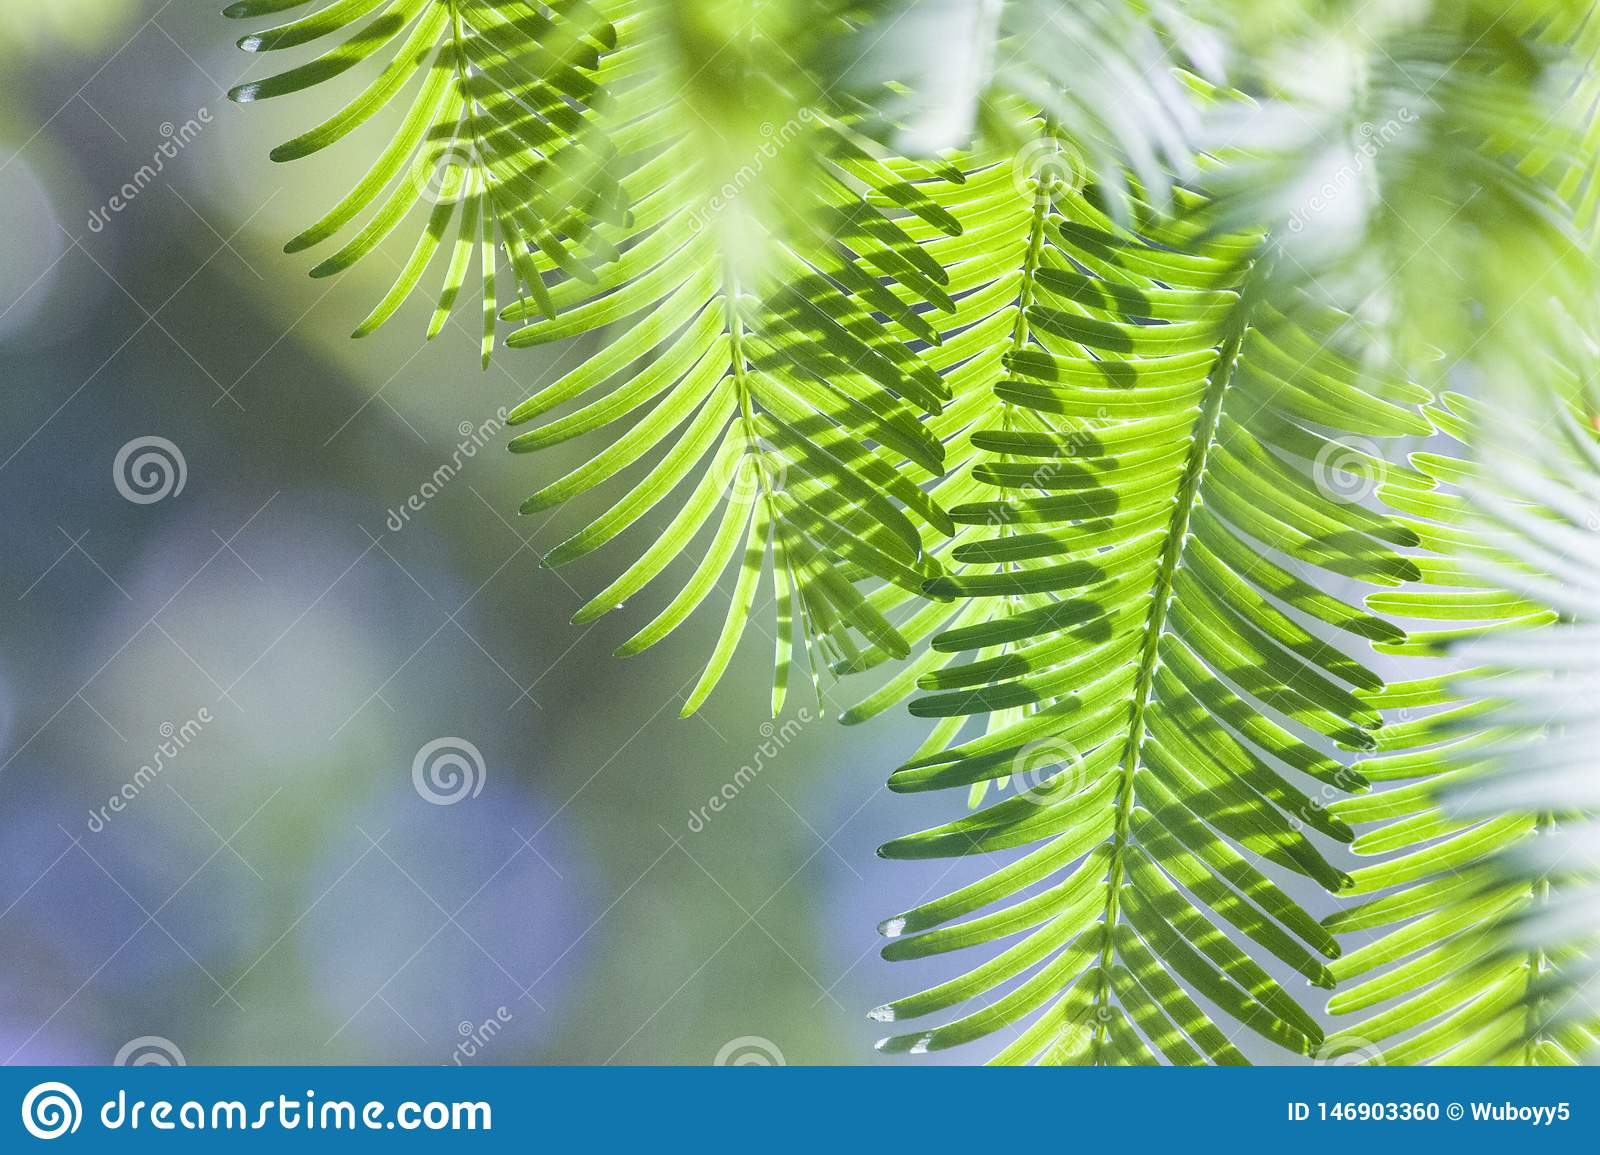 Green metasequoia spring green leaves